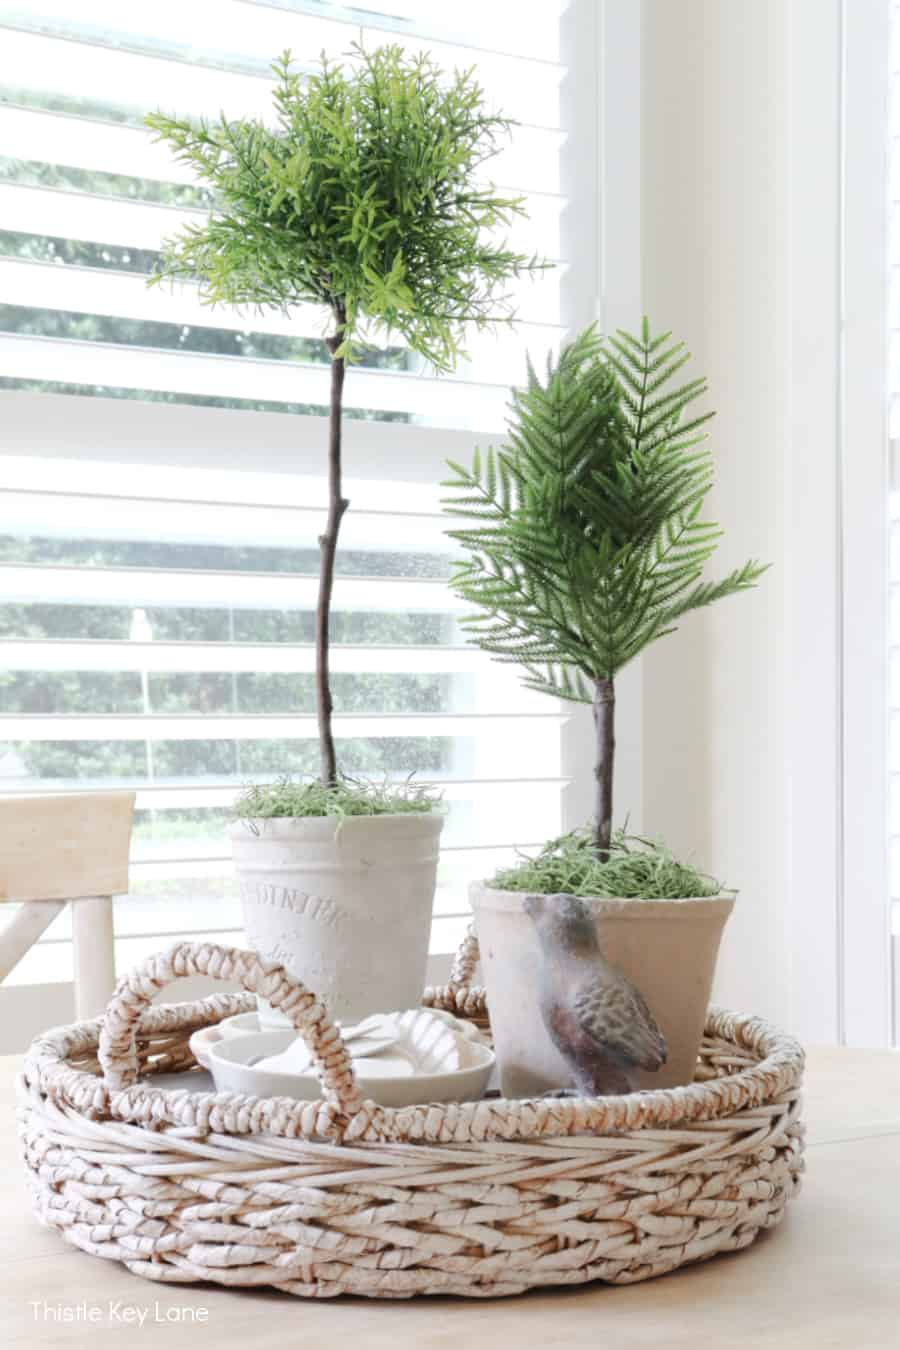 Two topiaries sitting in a tray. How To Create A Faux Topiary.